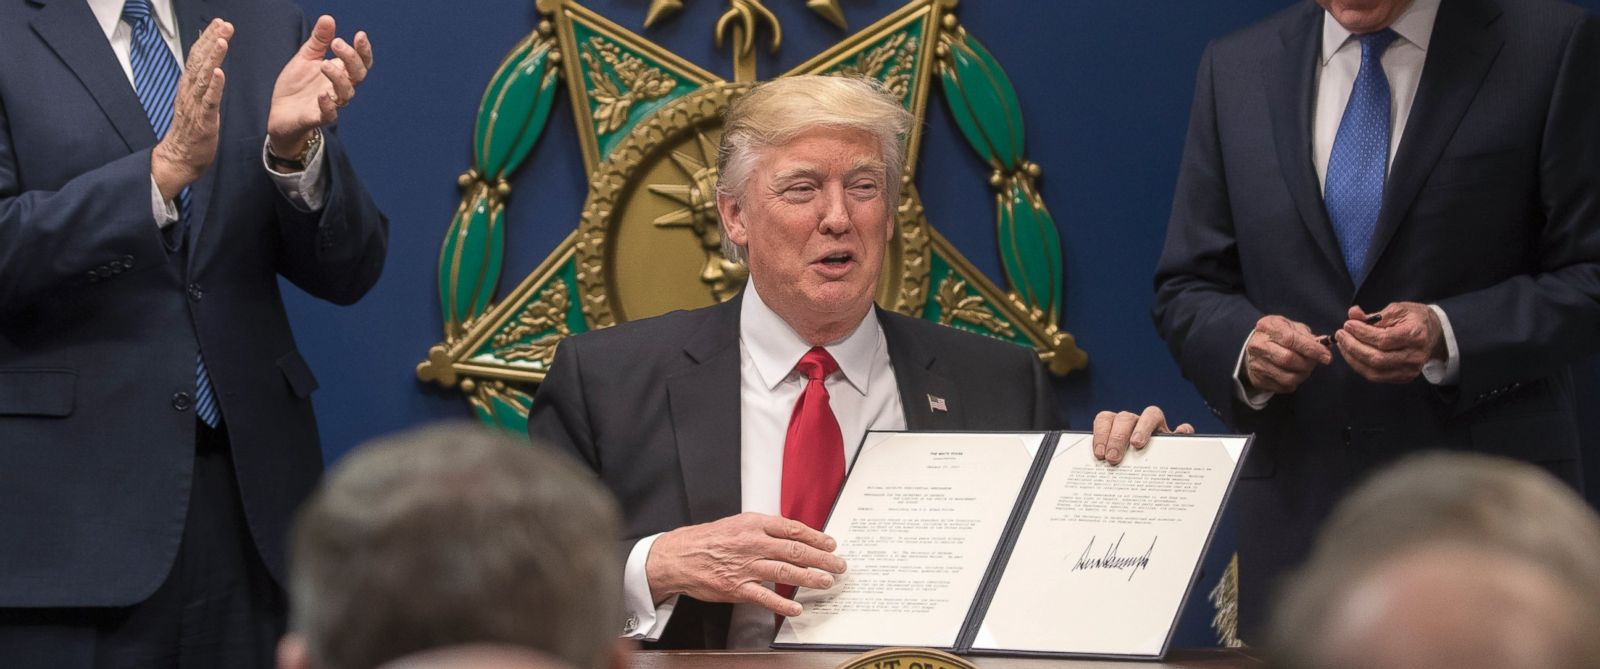 proposed trump executive order could curtail lgbt rights abc news